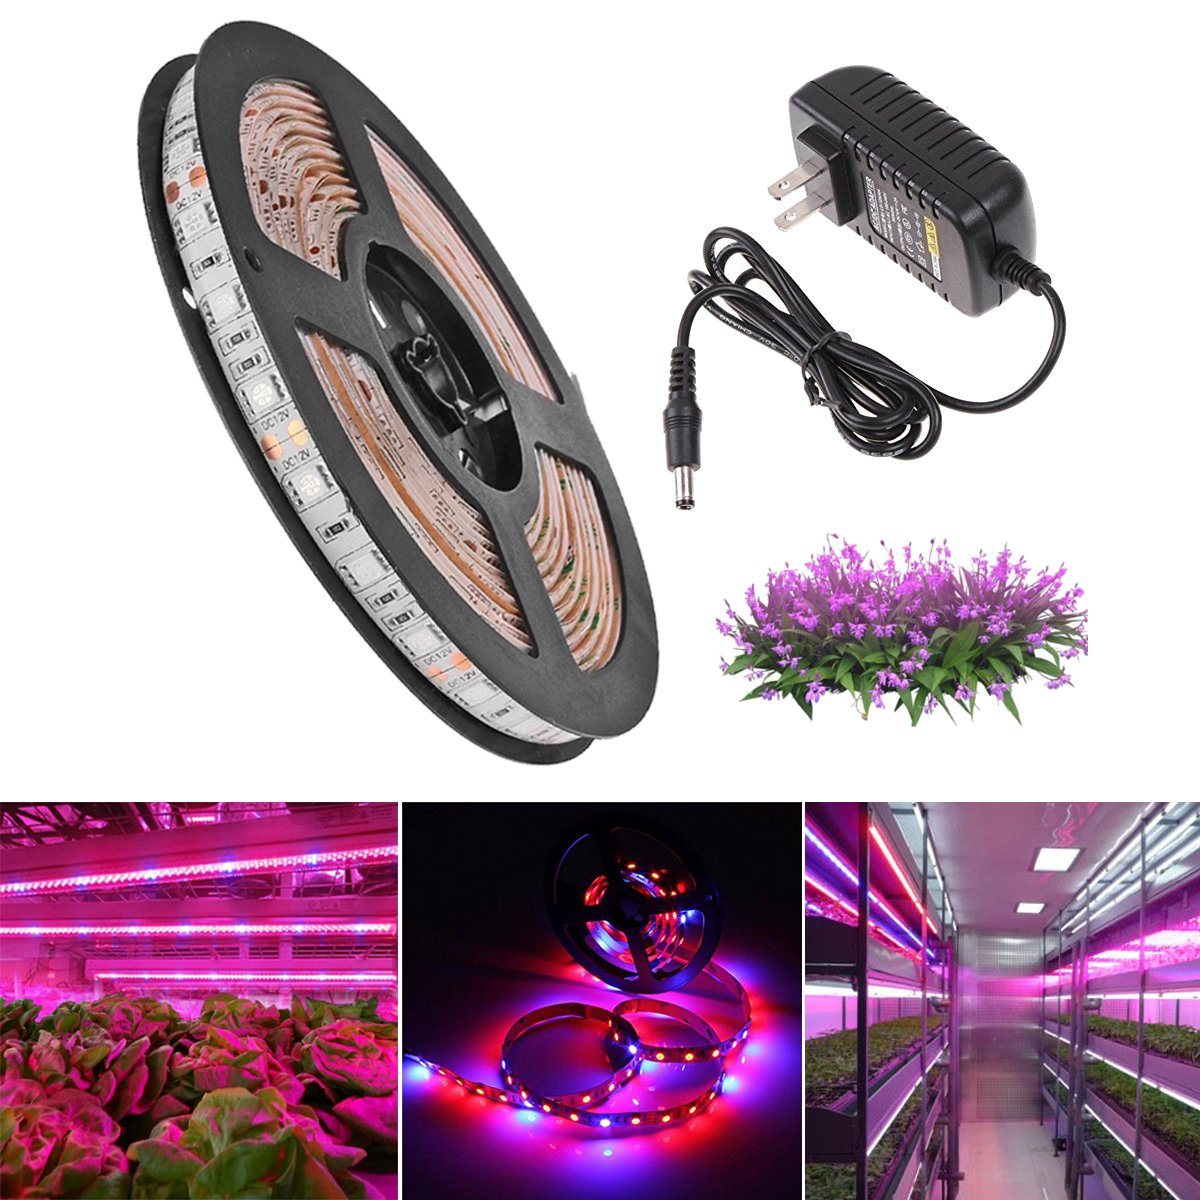 SJP LightLED Plant Grow Strip Light Kit(Power Adapter Included),Full Spectrum SMD 5050 Red Blue 4:1 Lighting Ribbon For Indoor Aquarium Greenhouse Hydroponic Plants Flower Growing (5M)